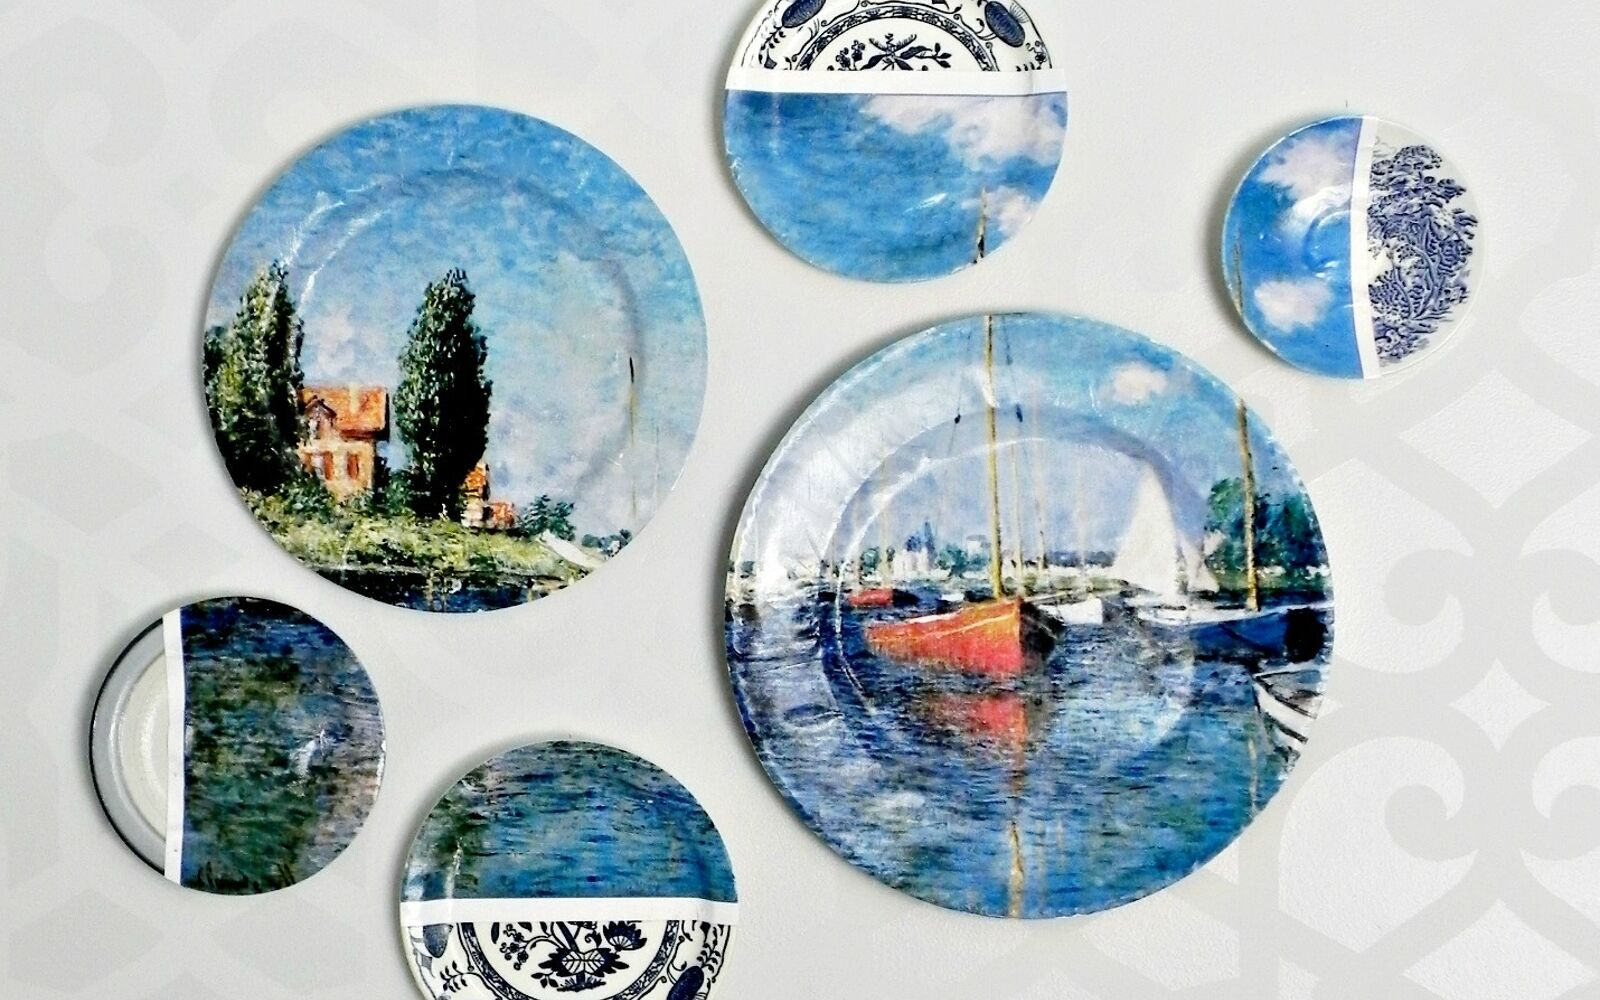 s don t overlook these 13 common garage sale finds, Single mismatched plates